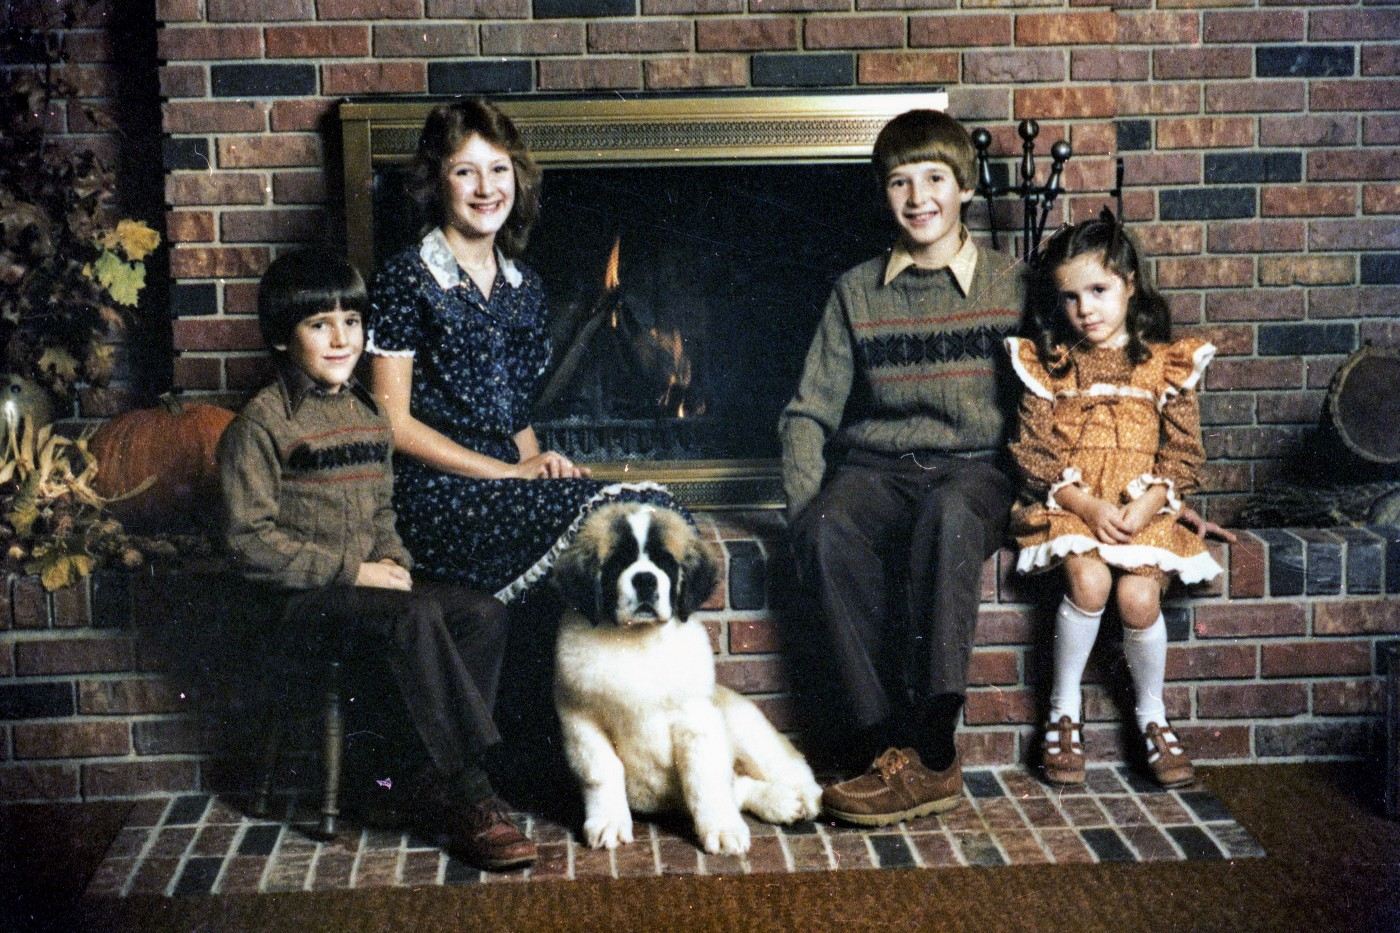 Four kids and a dog sitting by fireplace